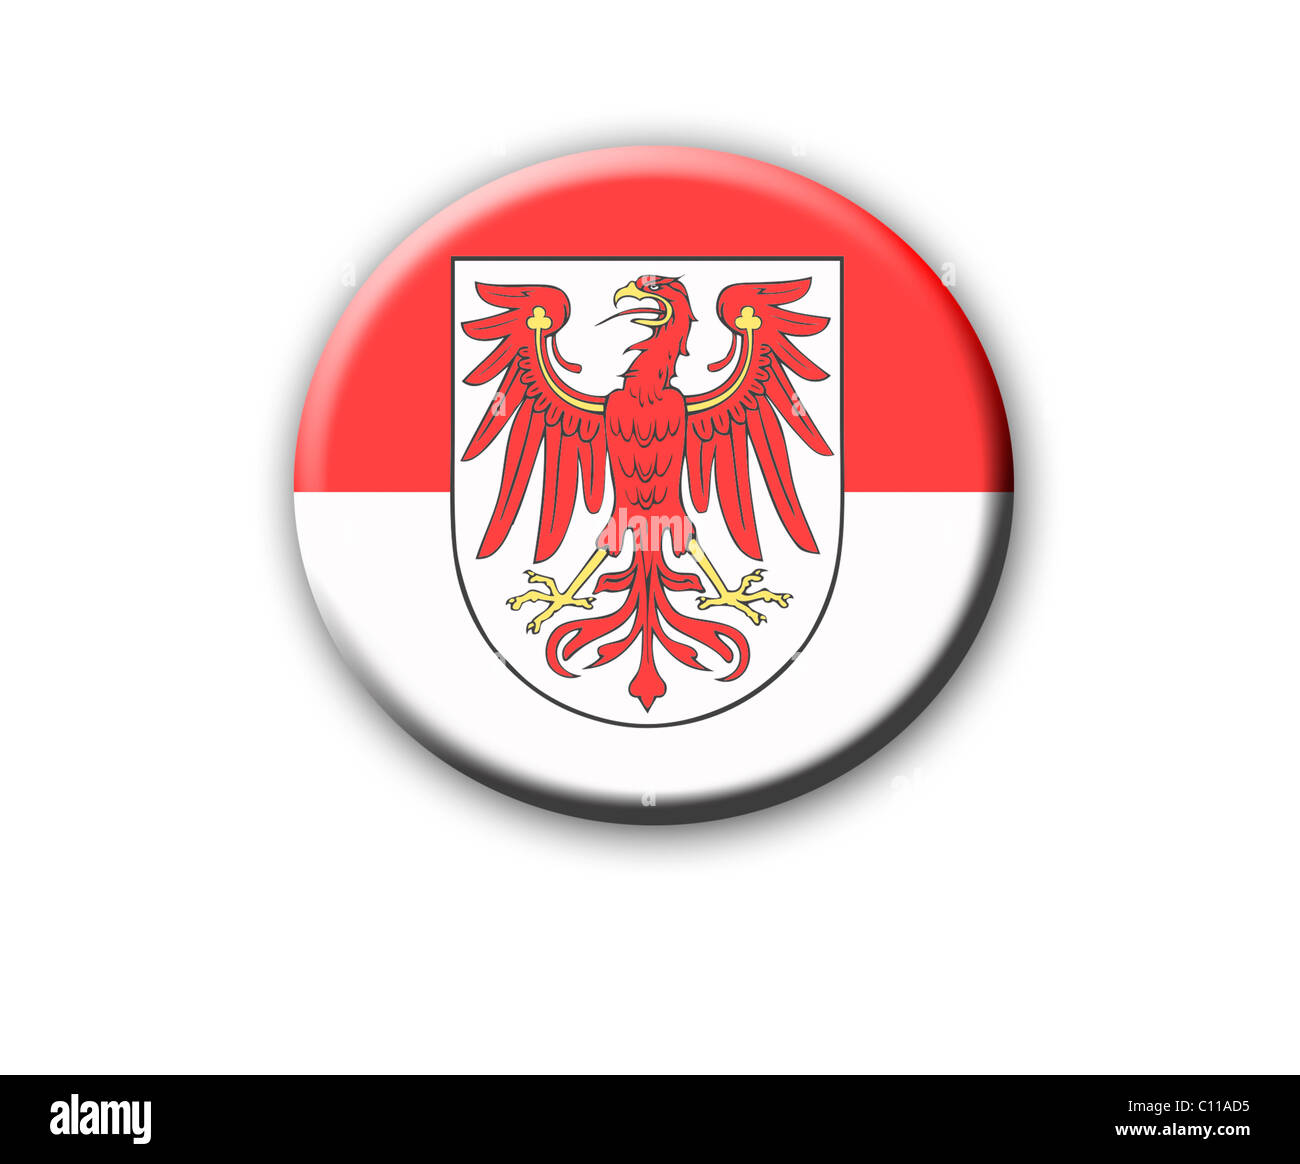 Coat of arms of the state of Brandenburg, Germany - Stock Image